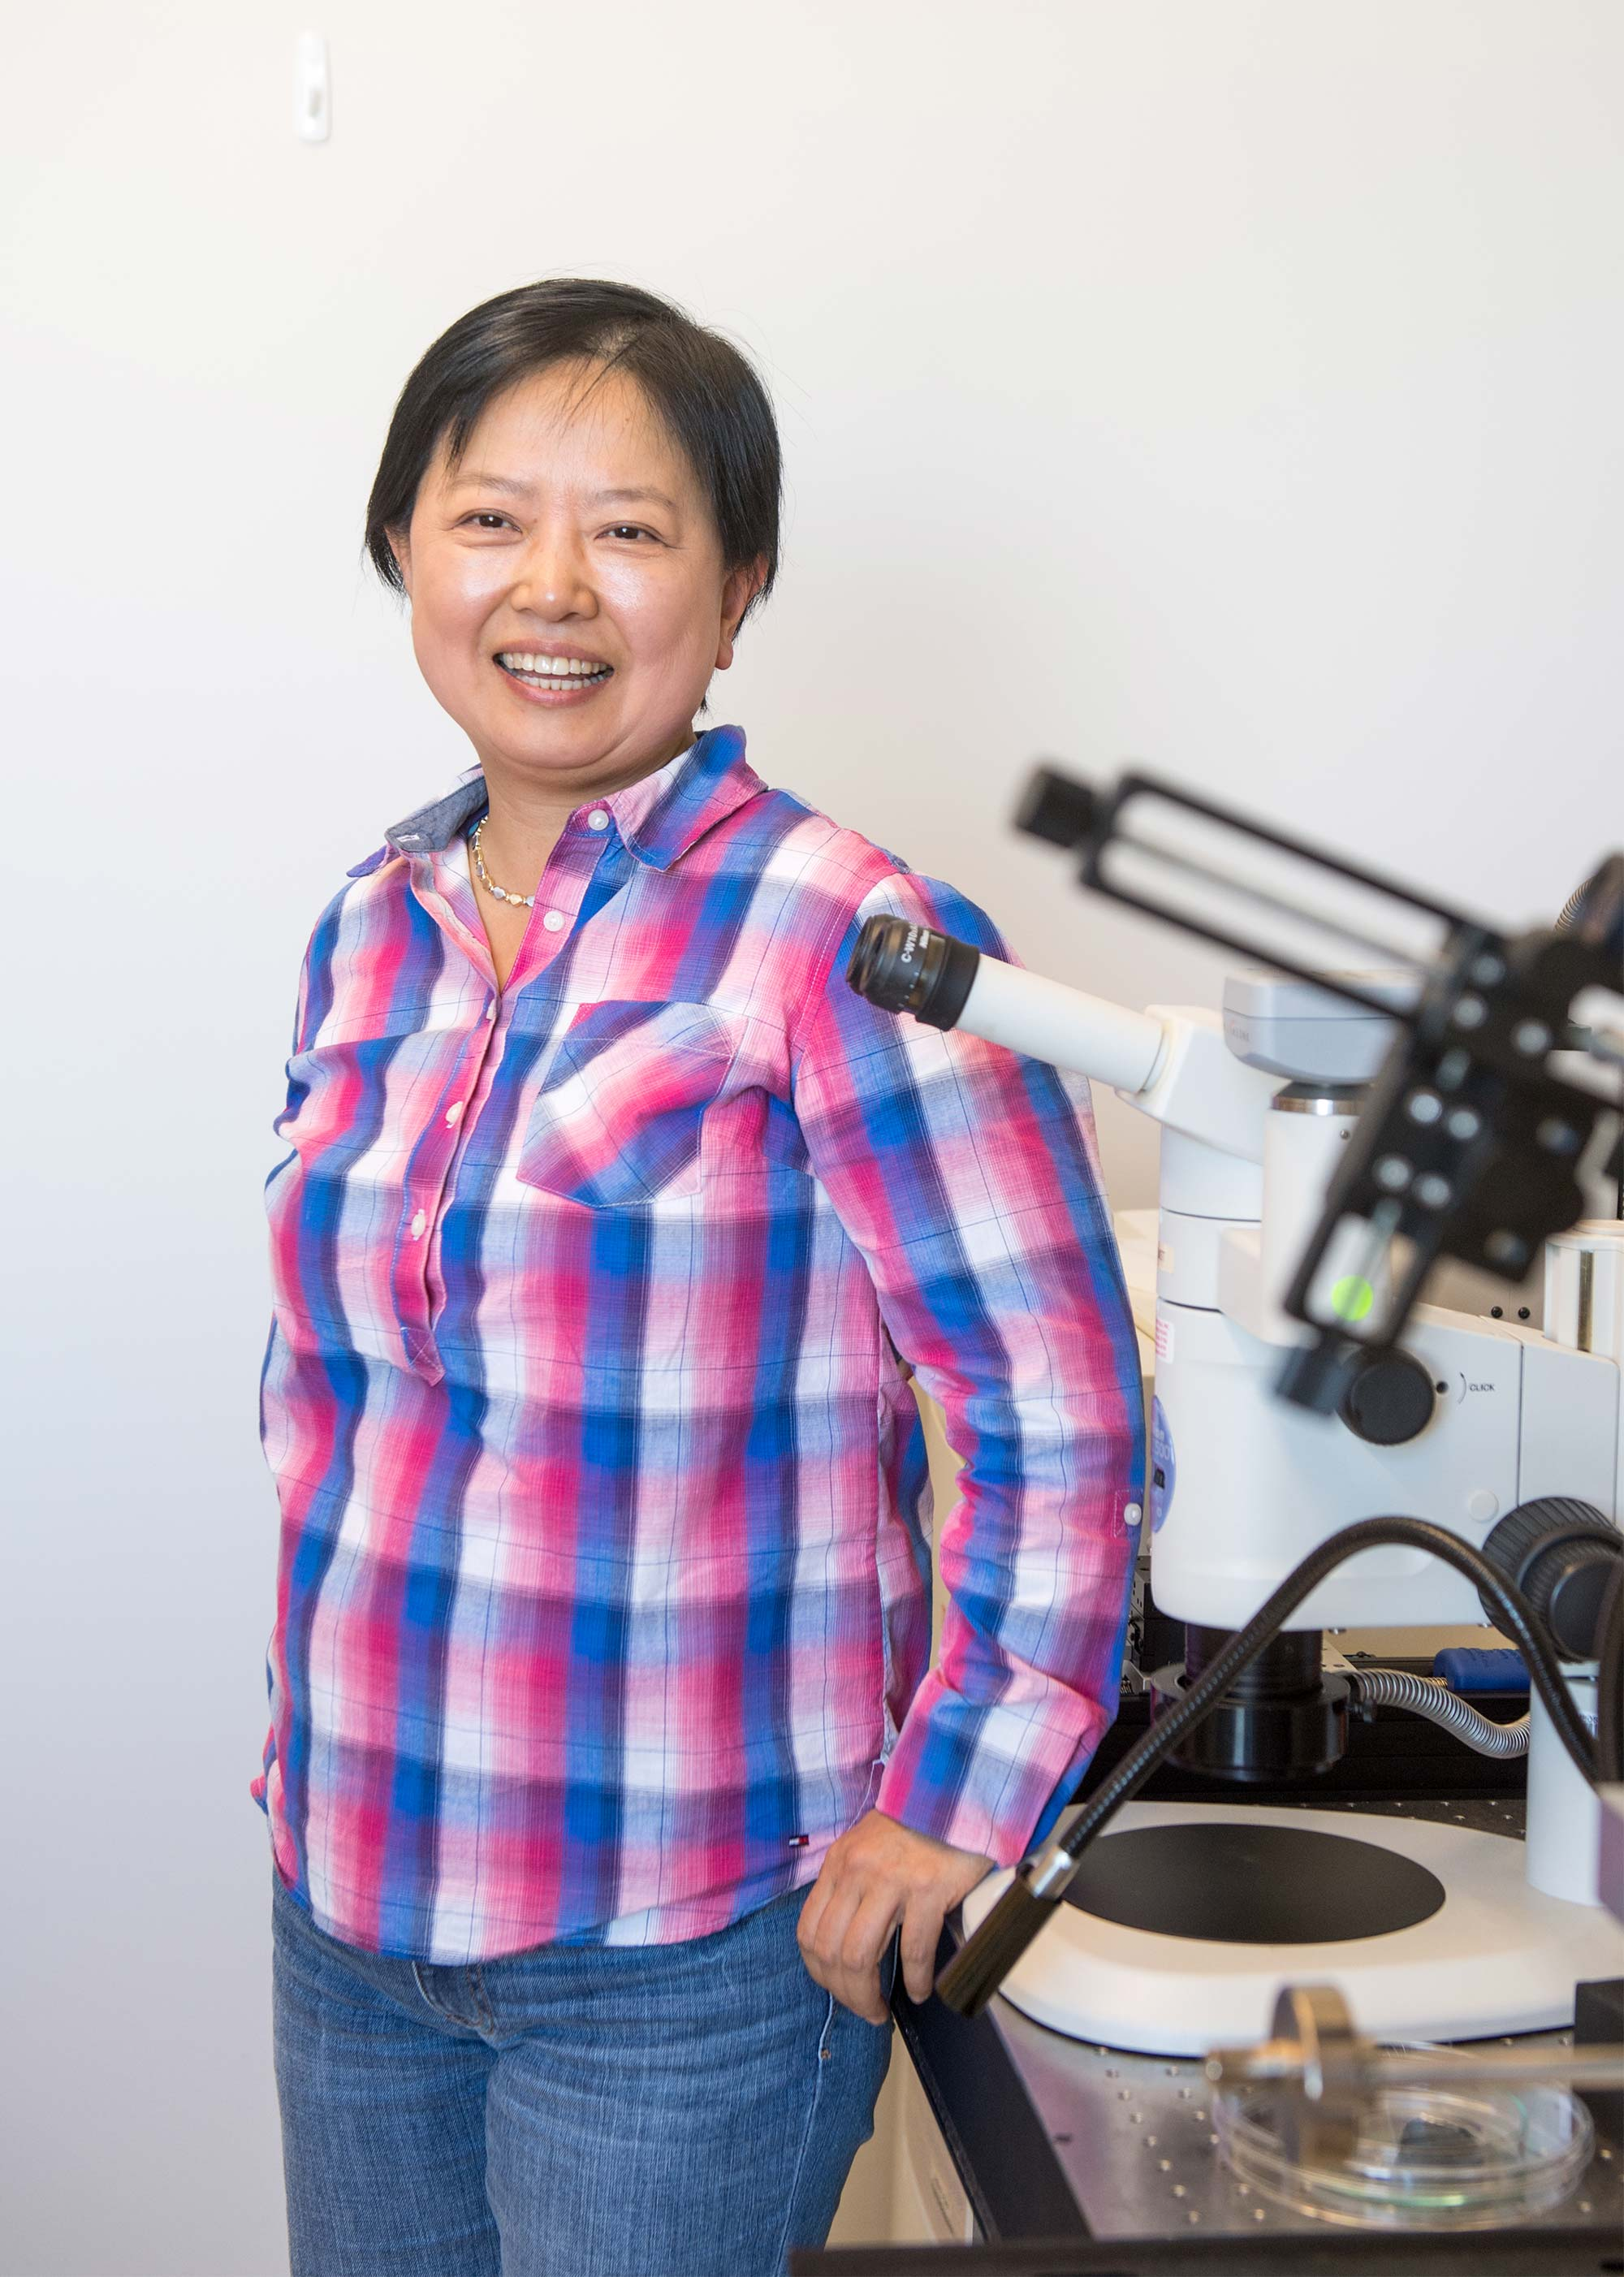 Boston University Professor of Engineering, Xin Zhang, poses for a portrait in her lab.